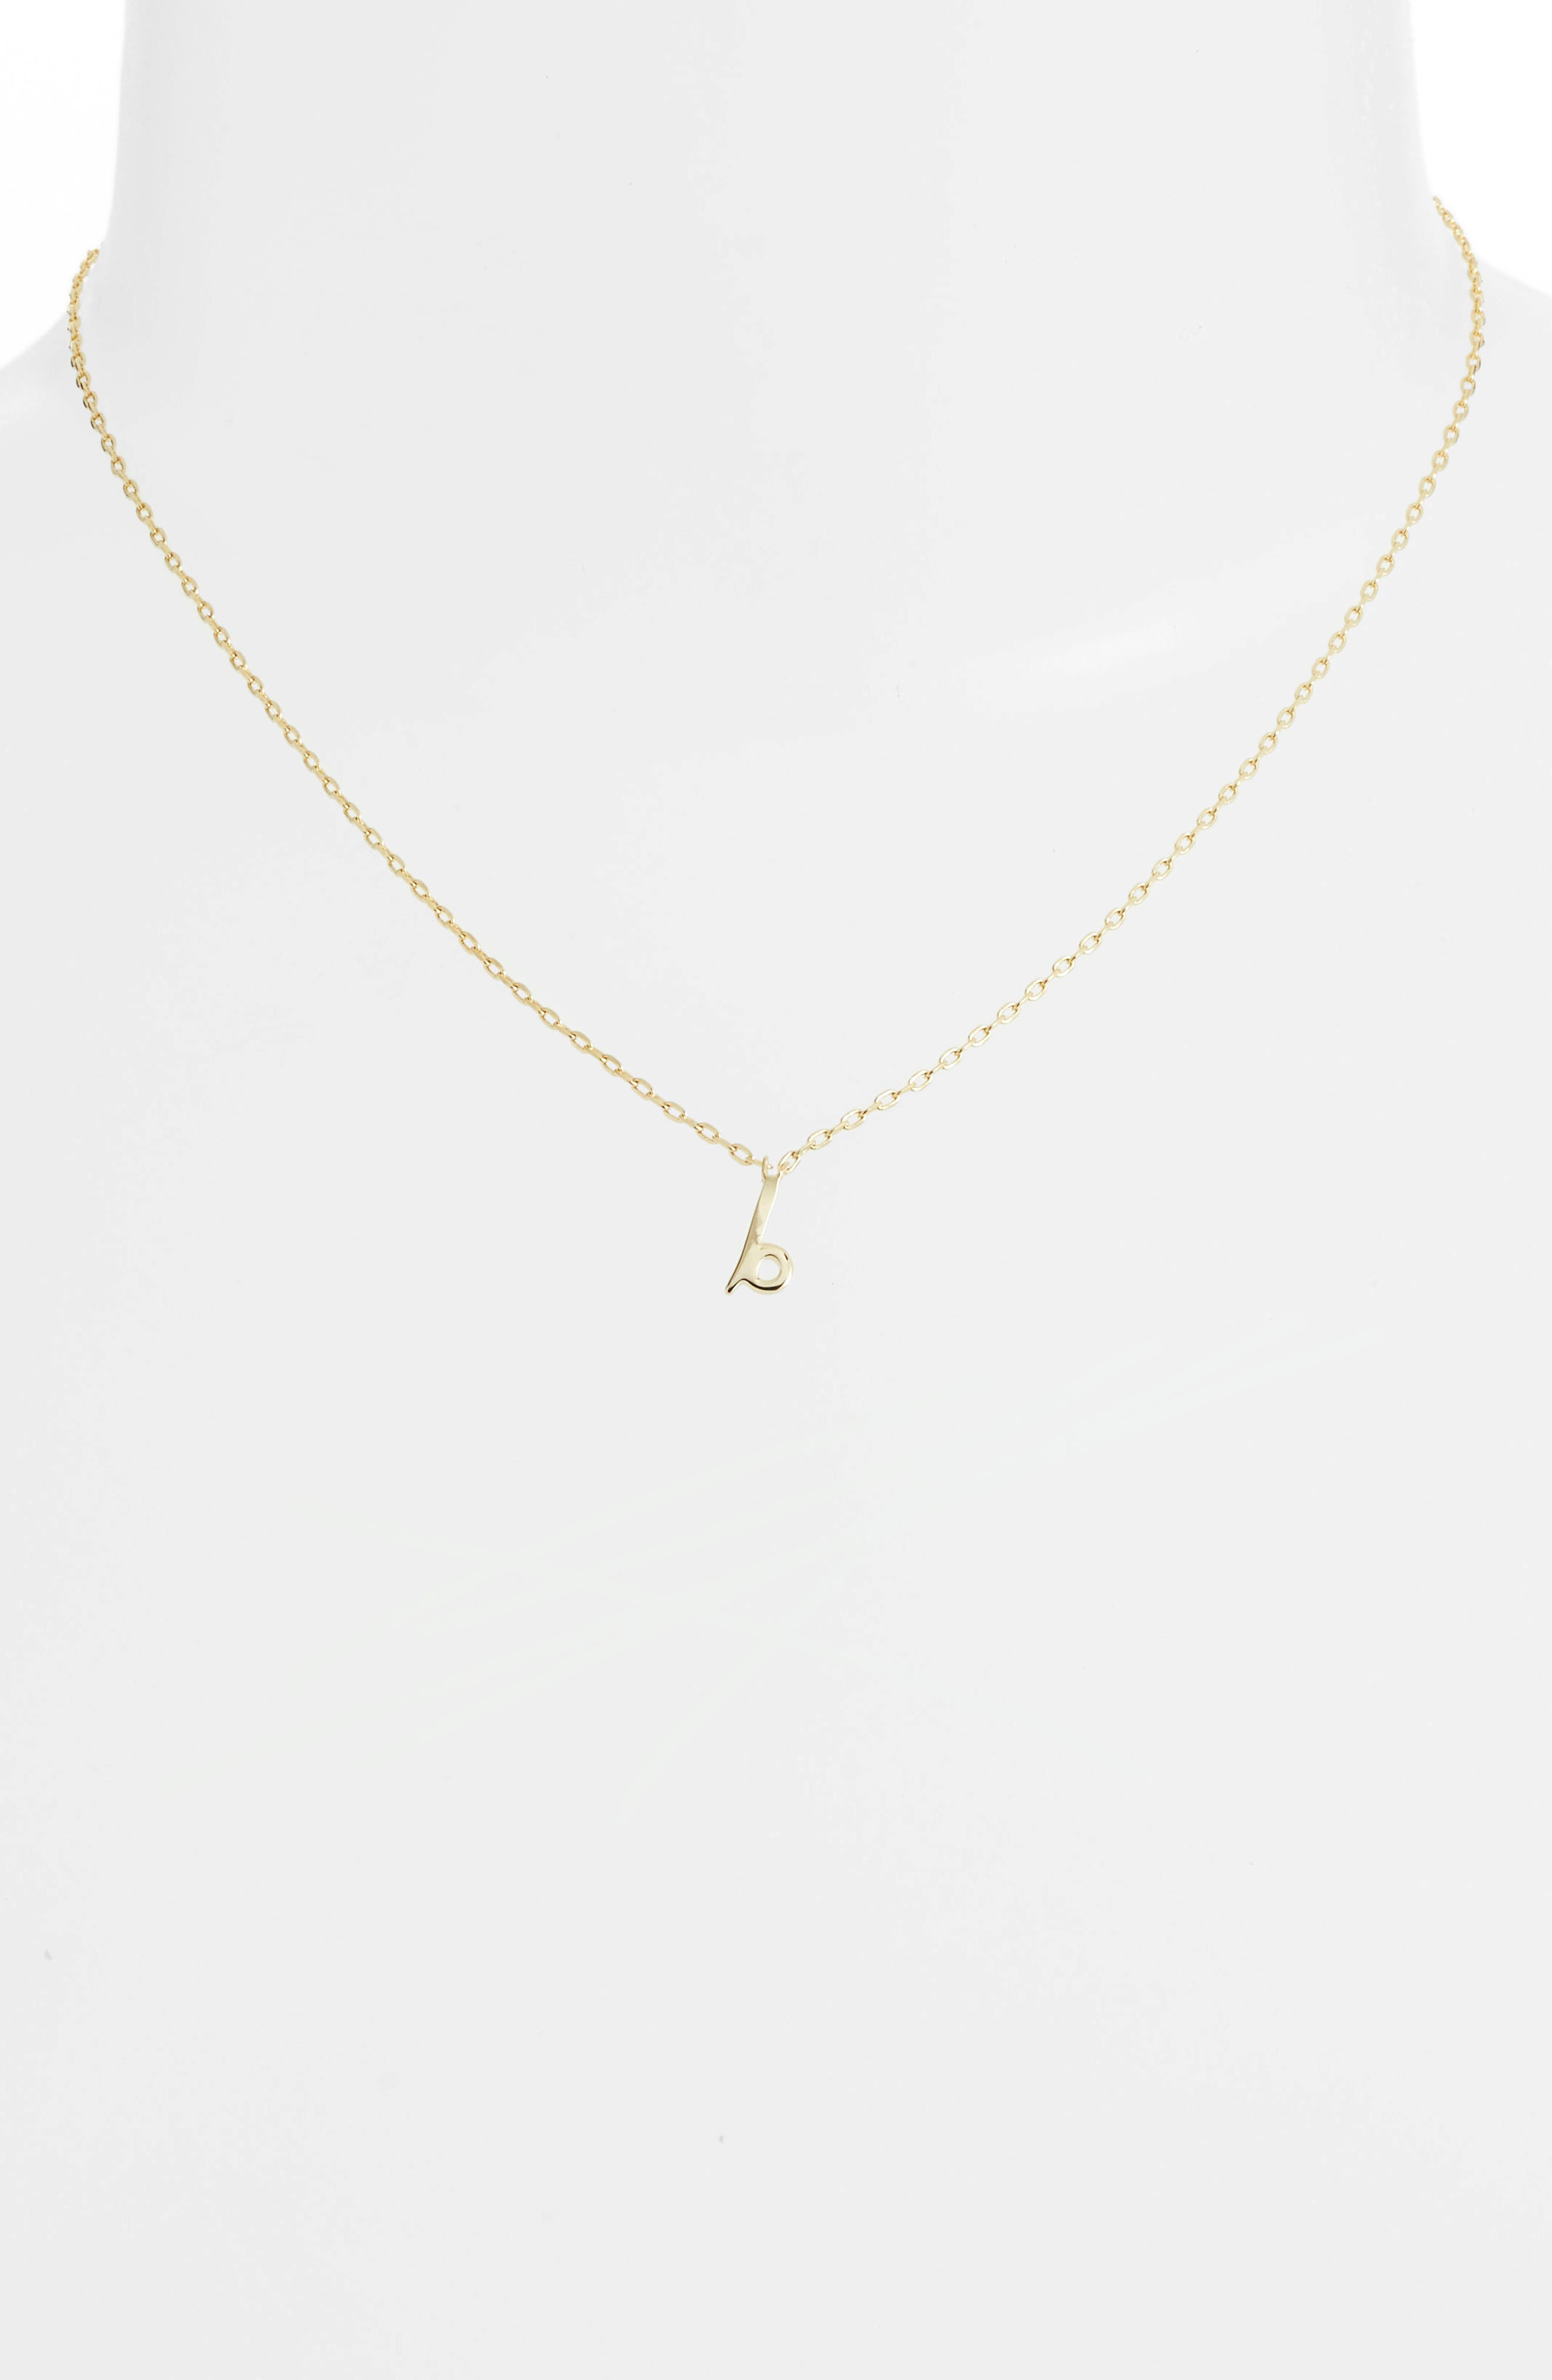 kate spade one in a million initial pendant necklace,                             Alternate thumbnail 2, color,                             B-GOLD